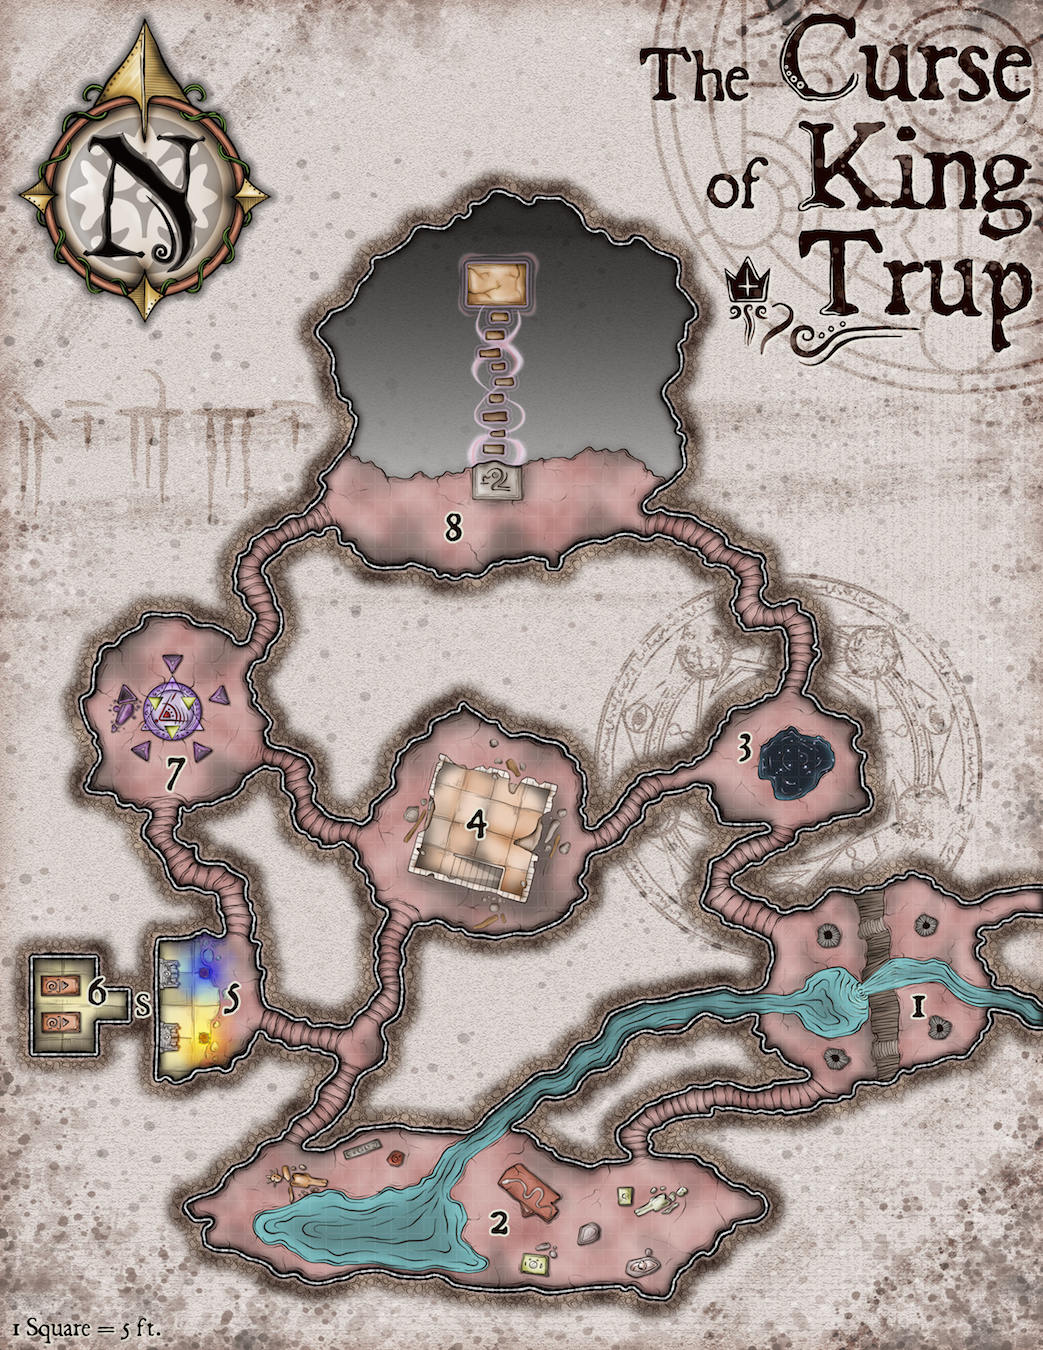 371 The Curse of King Trup